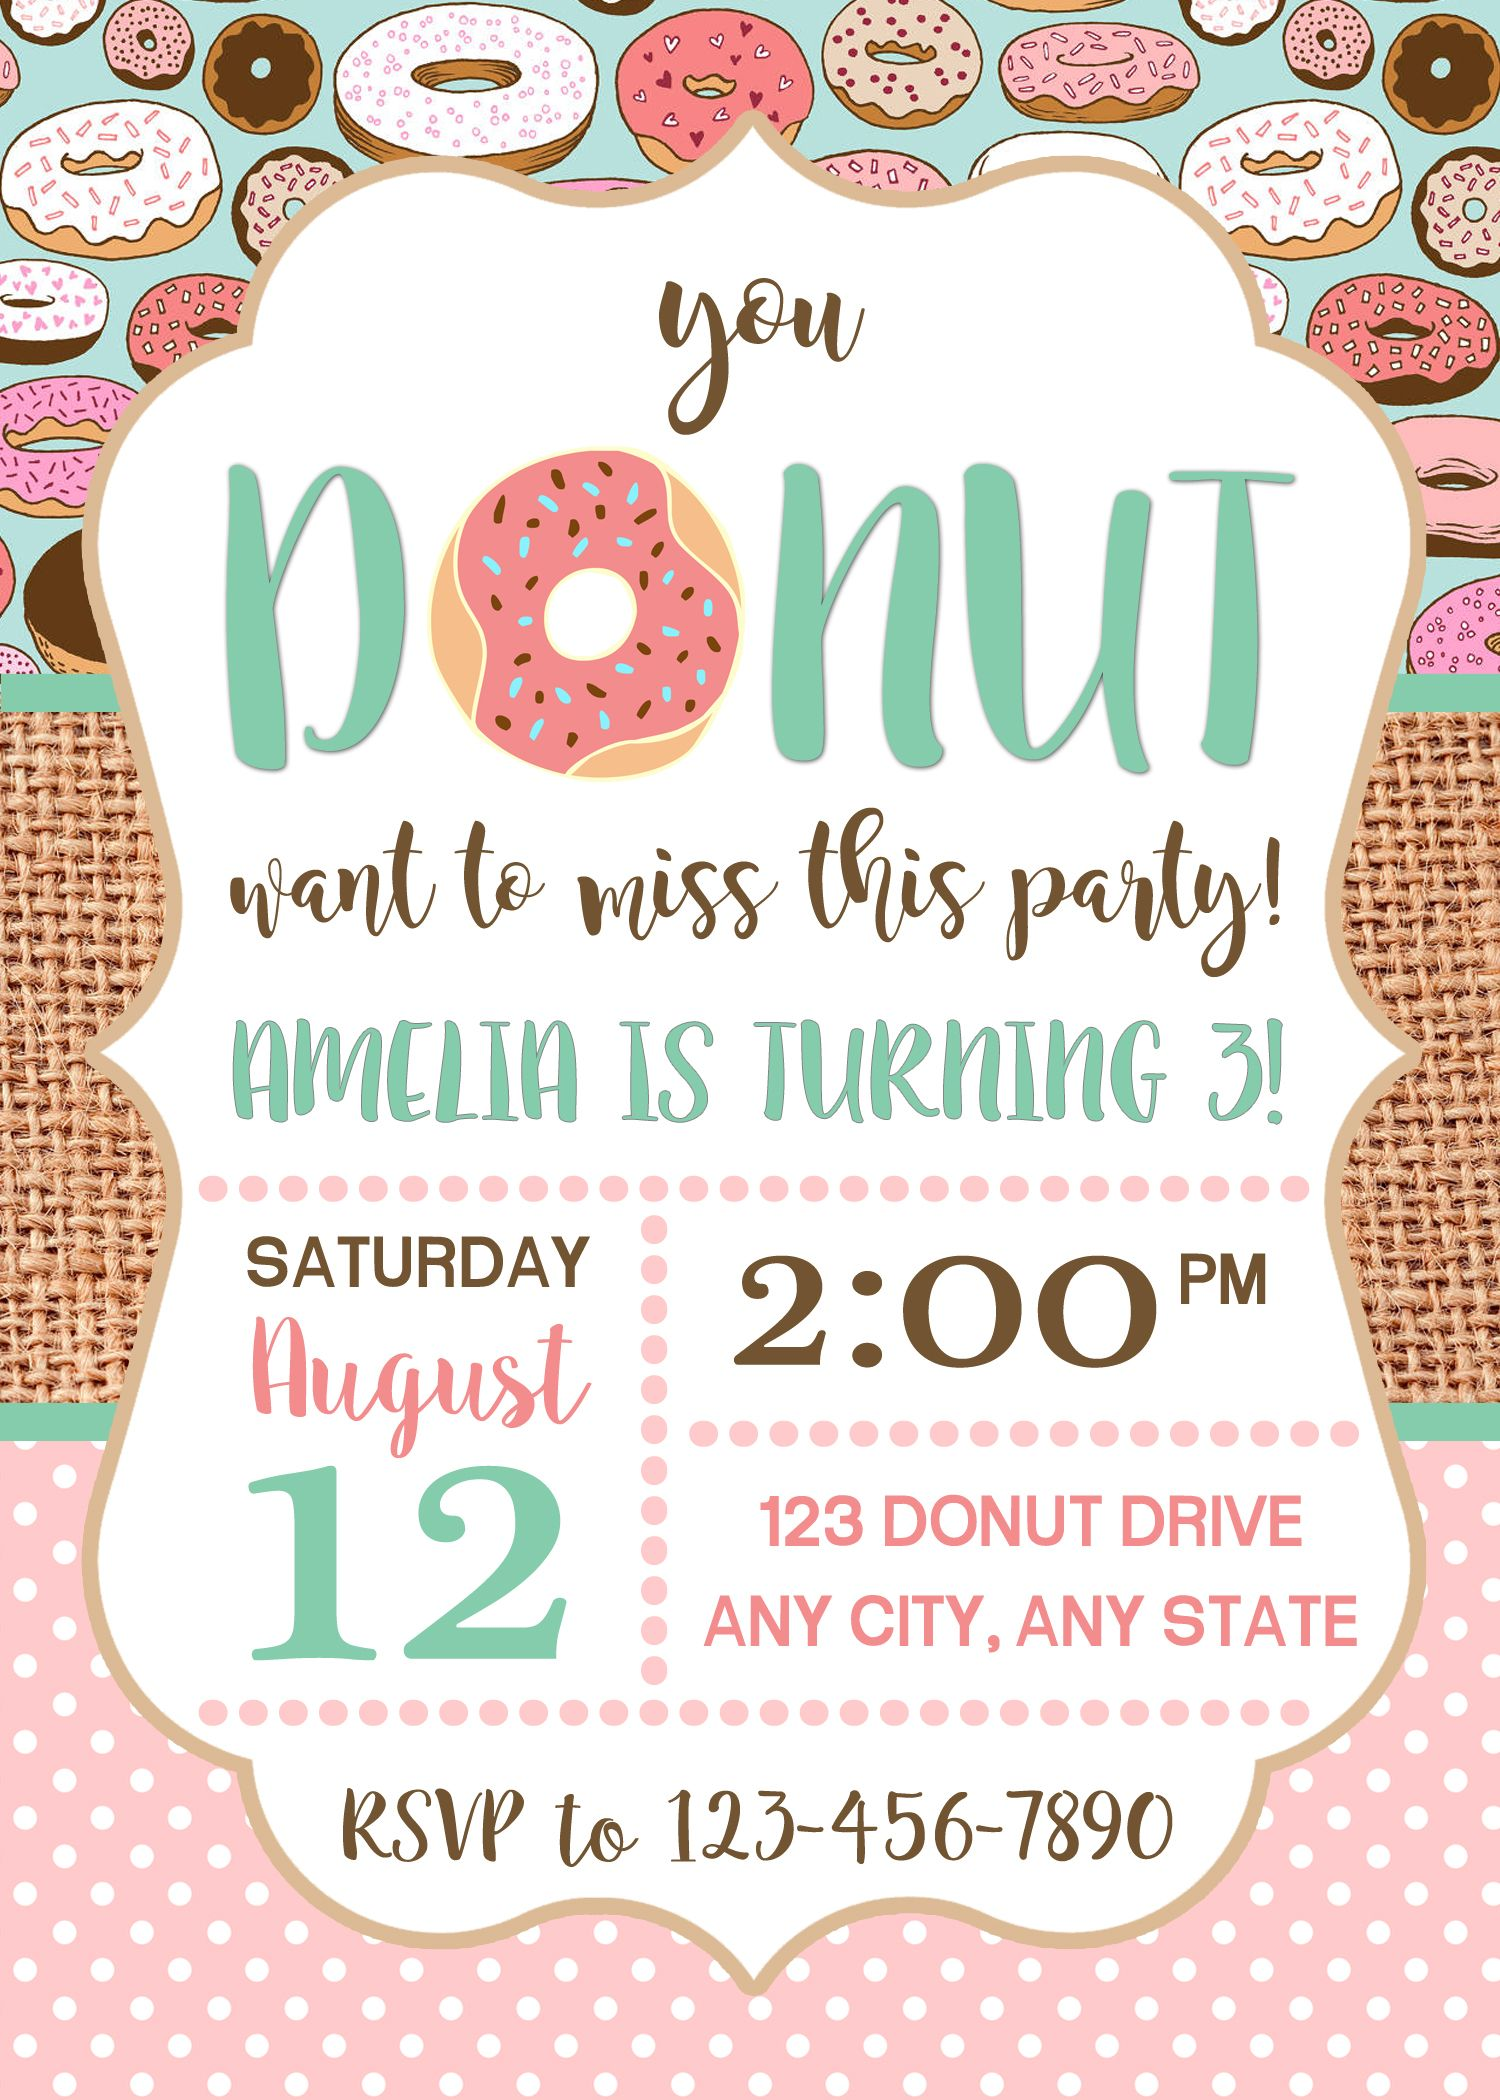 Donut invitation donut party birthday invitation donut birthday donut invitation donut party birthday invitation donut birthday party girl invitation filmwisefo